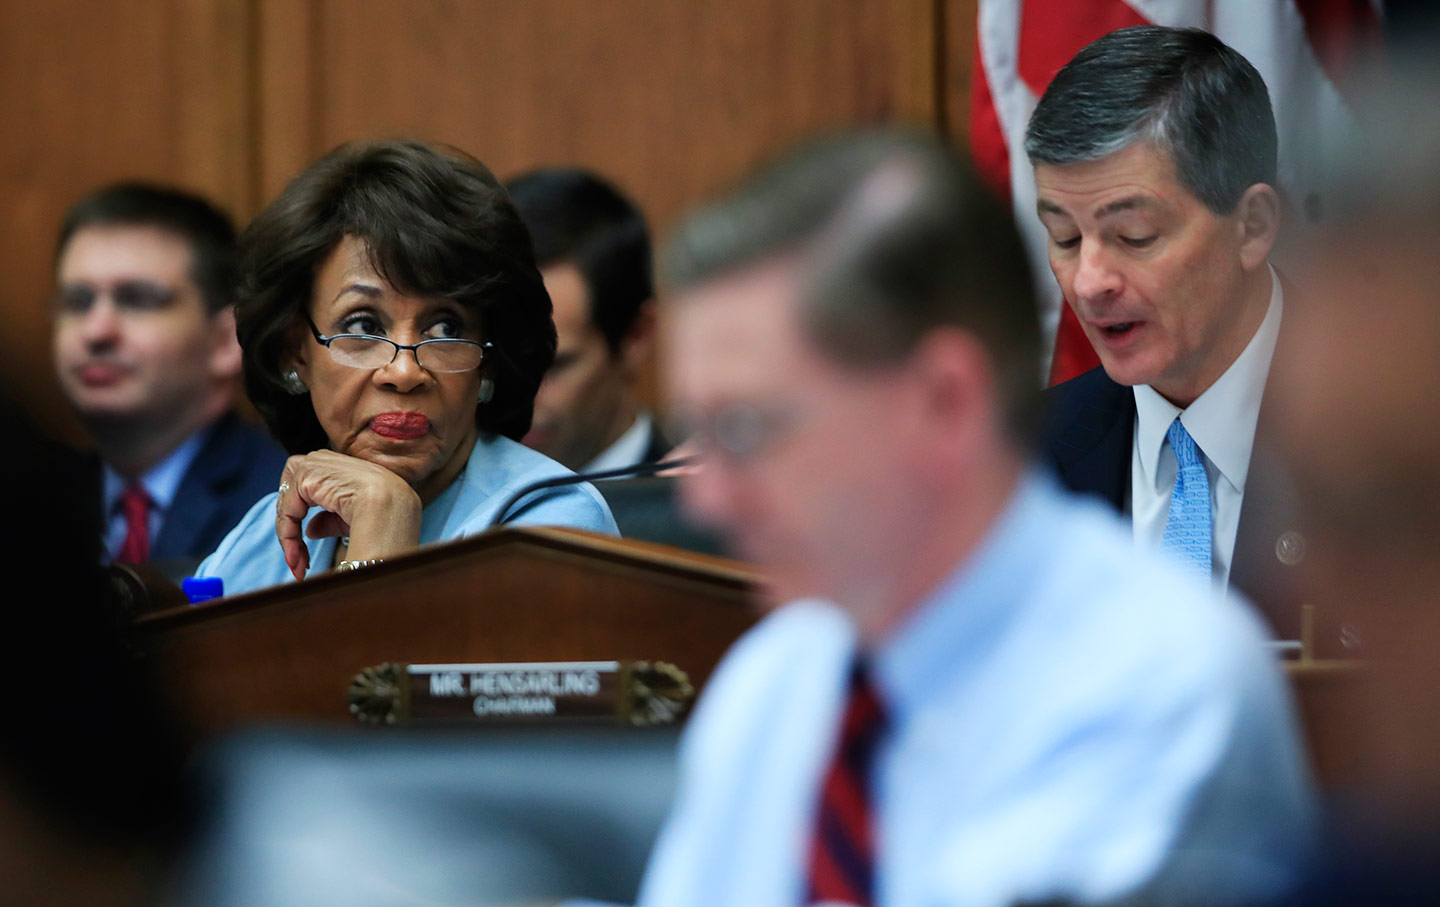 Maxine Waters in a Congressional Hearing